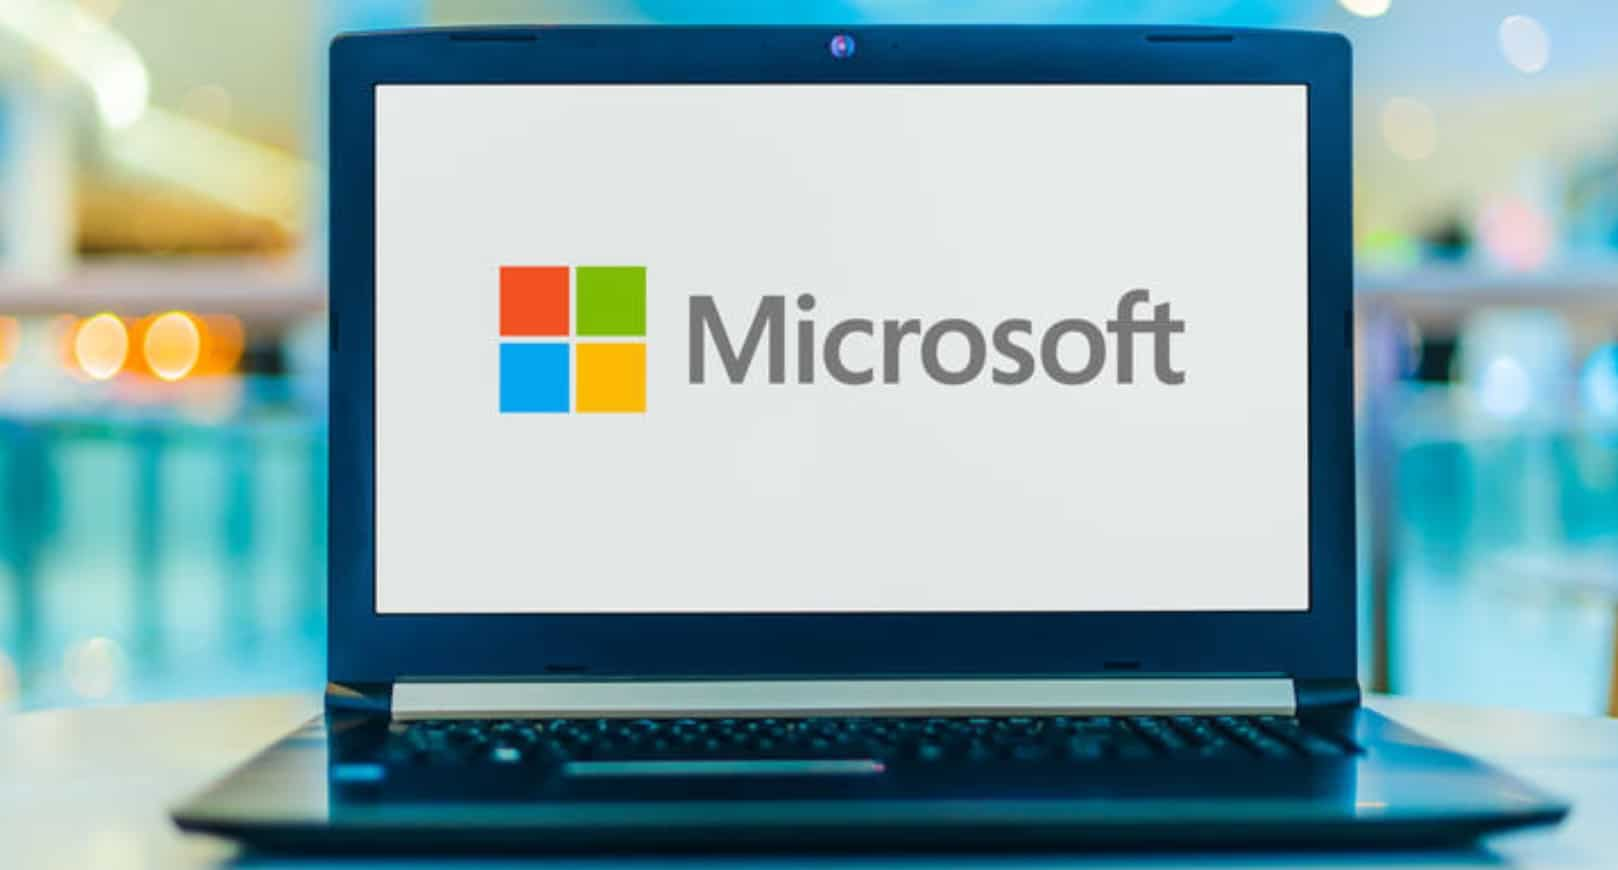 Microsoft Hit By a Massive Hack, Thousands of Users' Data at Risk